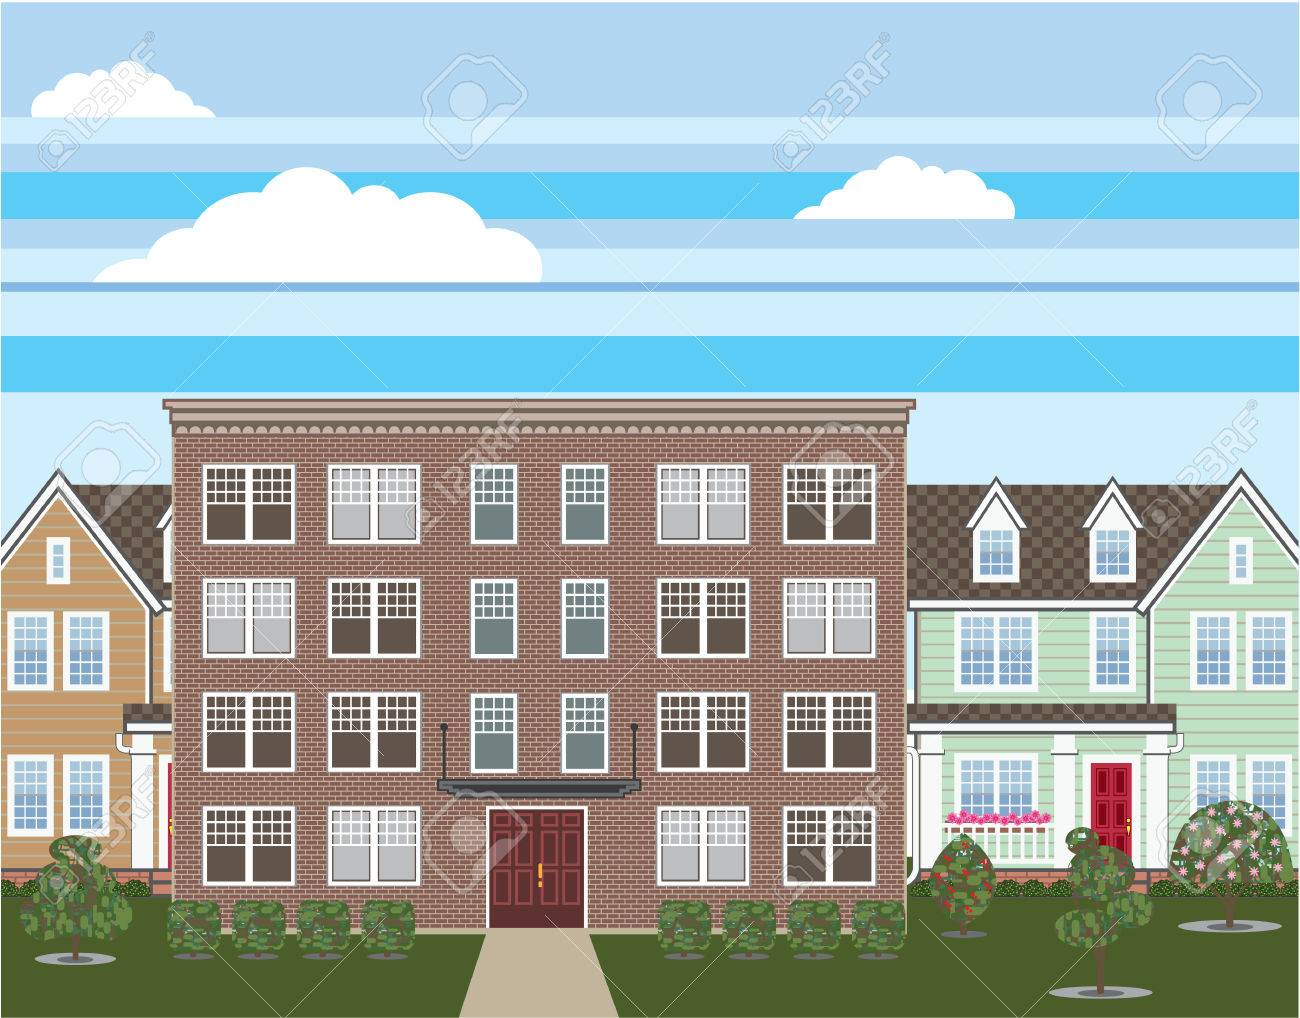 Superb Brick Apartment Building Vector Illustration Stock Vector   69748337